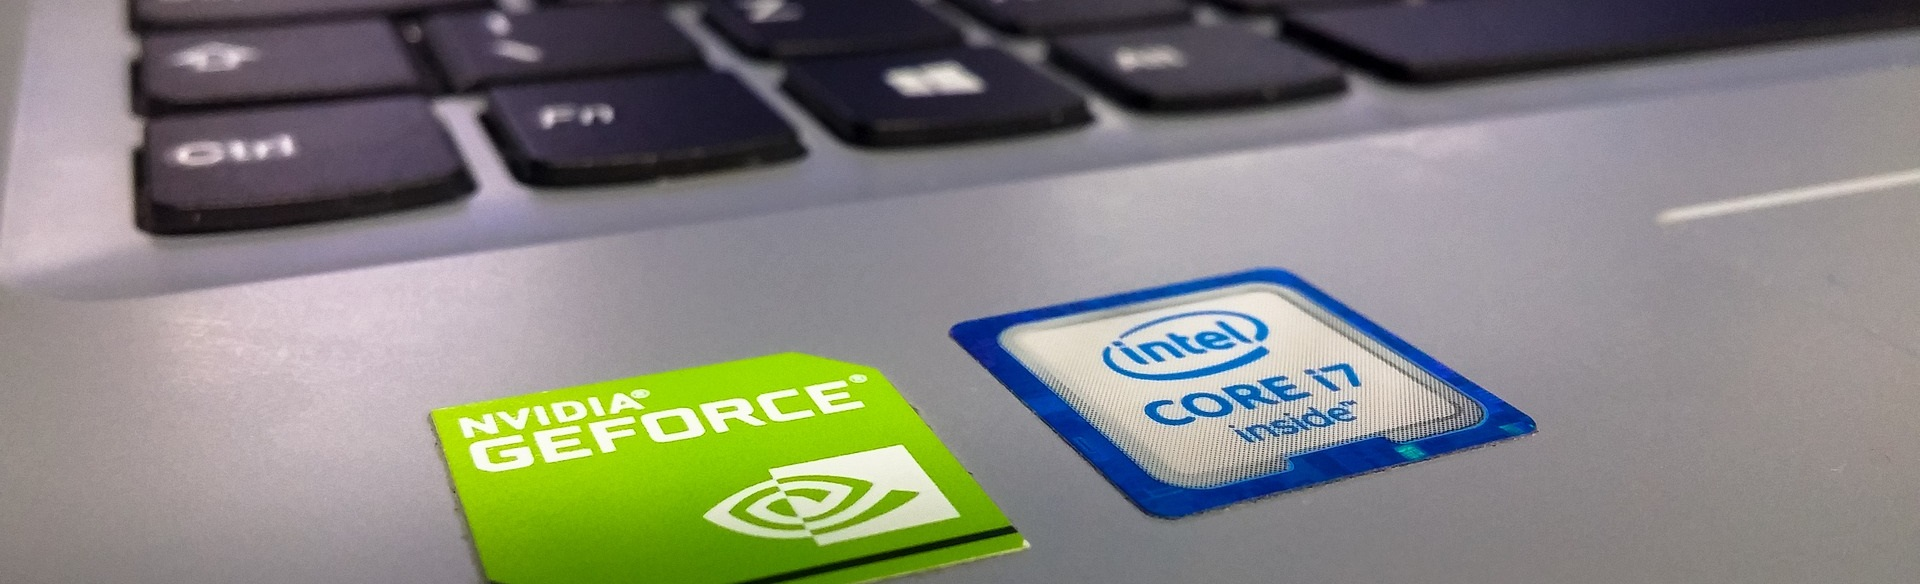 Product with Intel